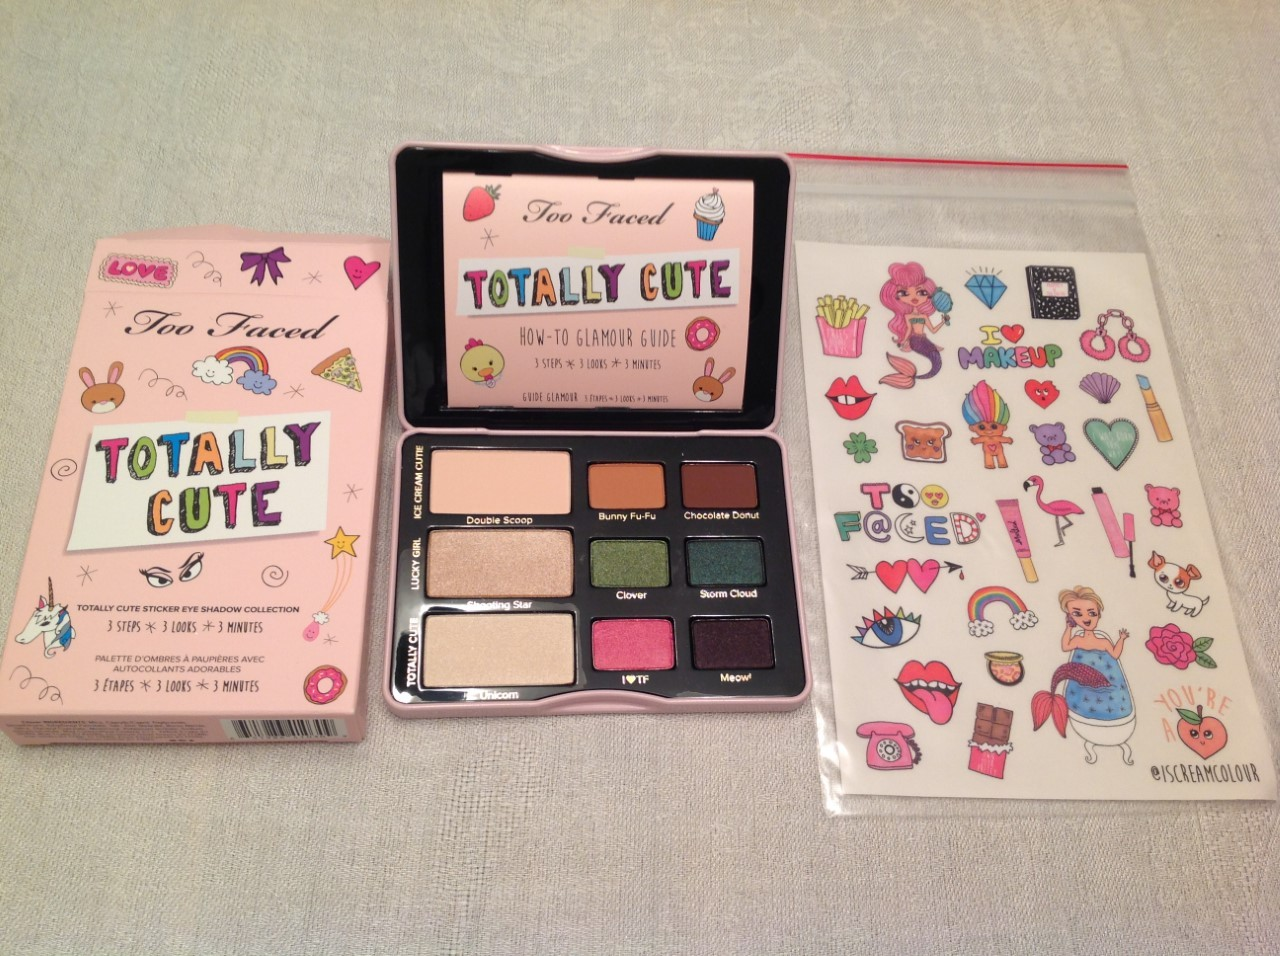 Primary image for 100% AUTHENTIC TOO FACED TOTALLY CUTE STICKER EYE SHADOW COLLECTION, FULL SIZE